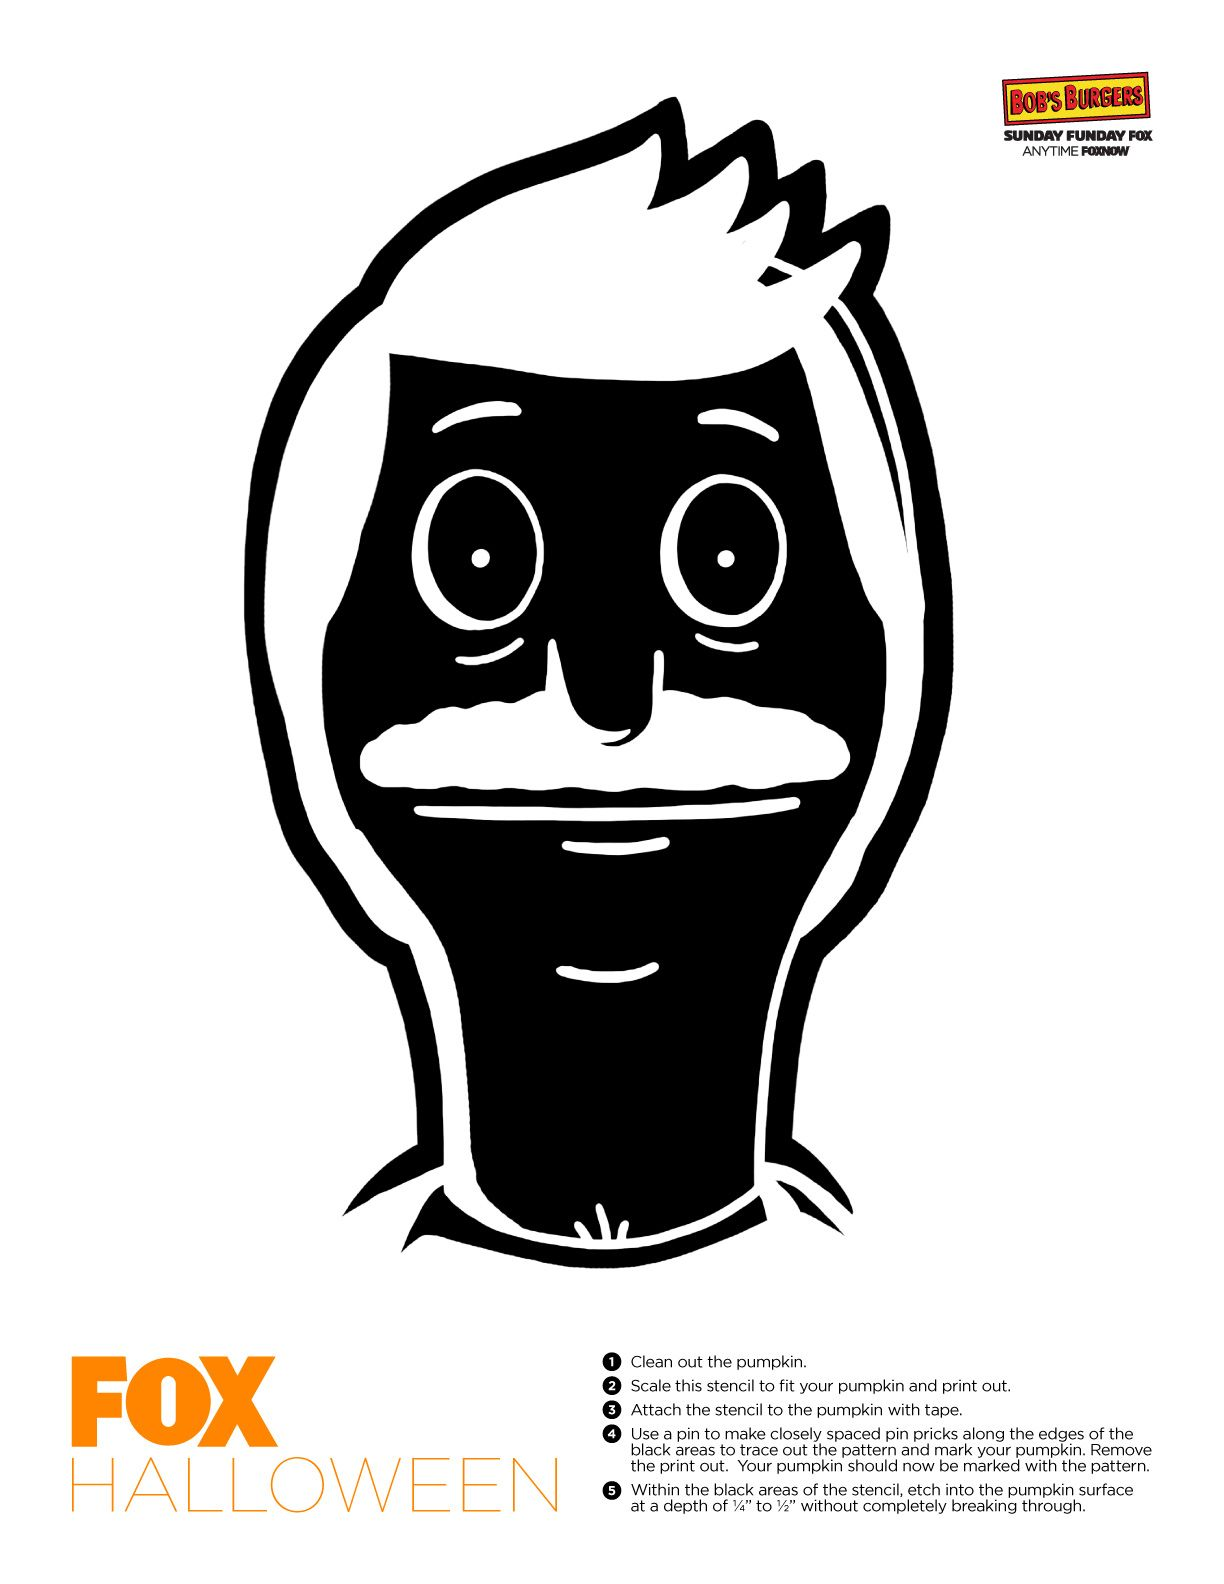 Want Bob on your pumpkin this year? Just print out this stencil ...